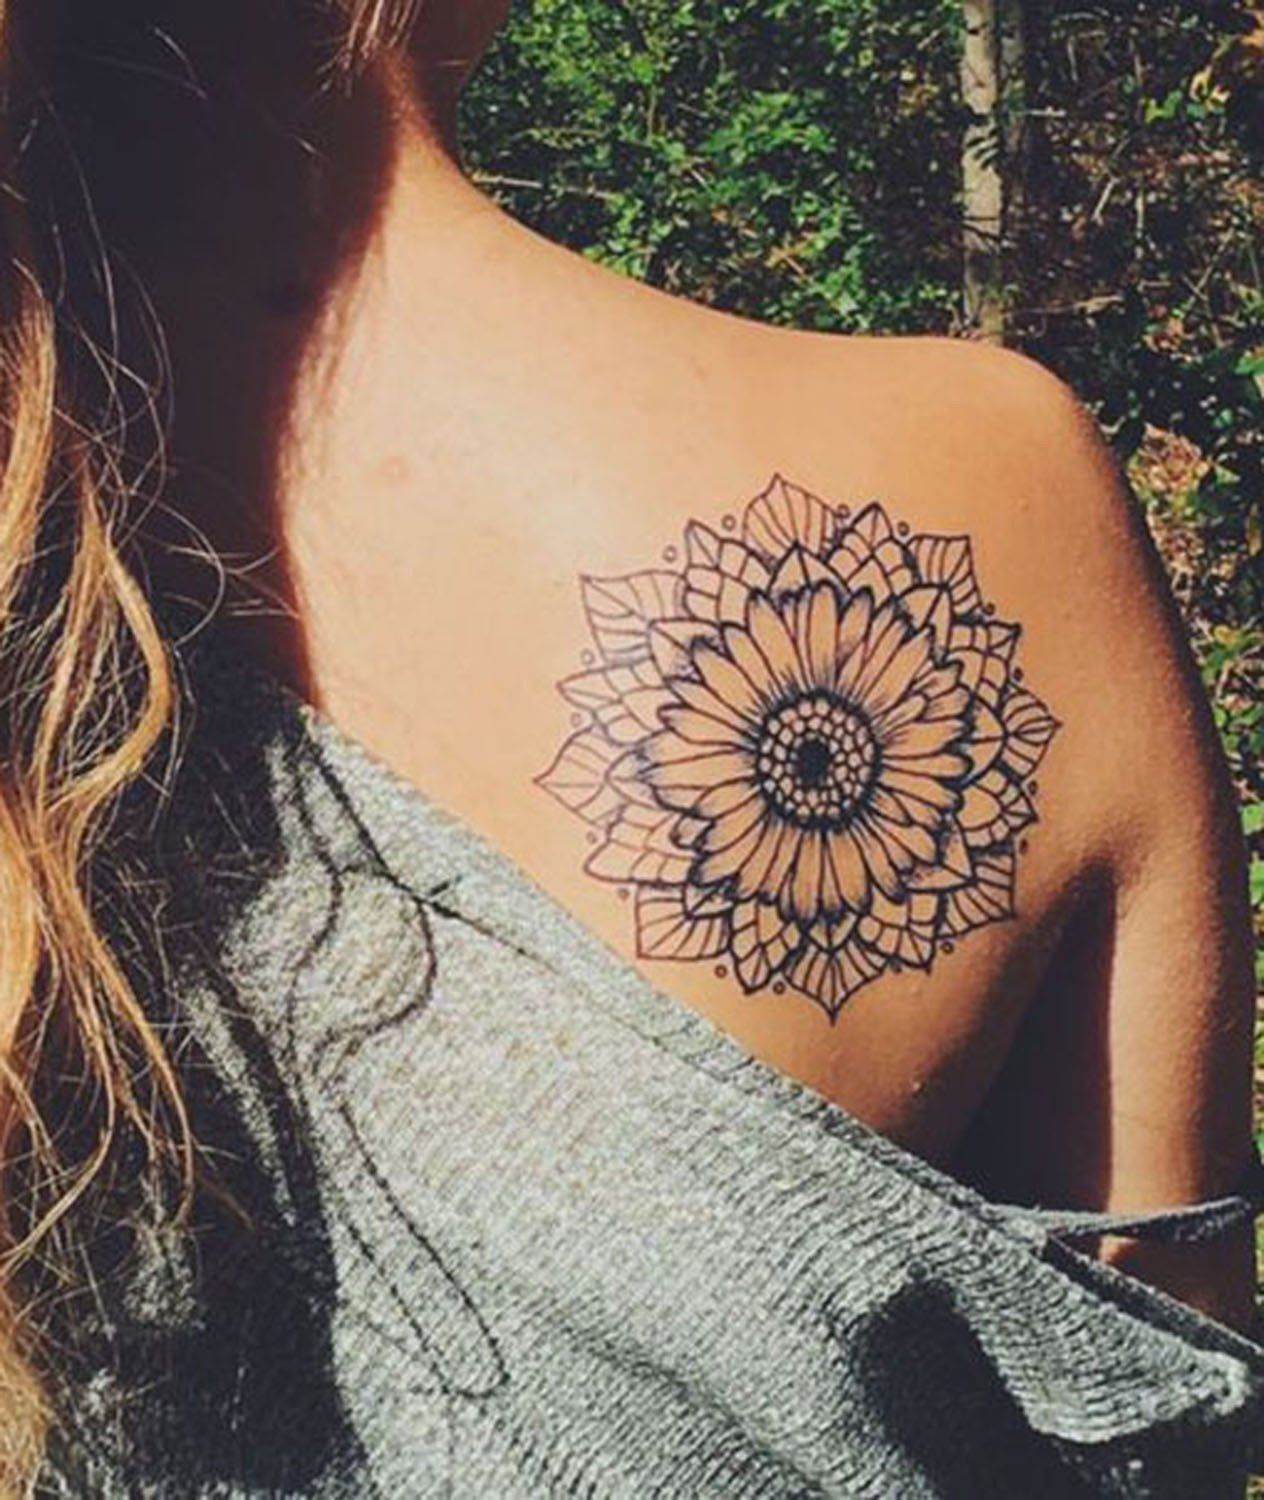 20 of the Most Boujee Sunflower Tattoo Ideas Back tattoo